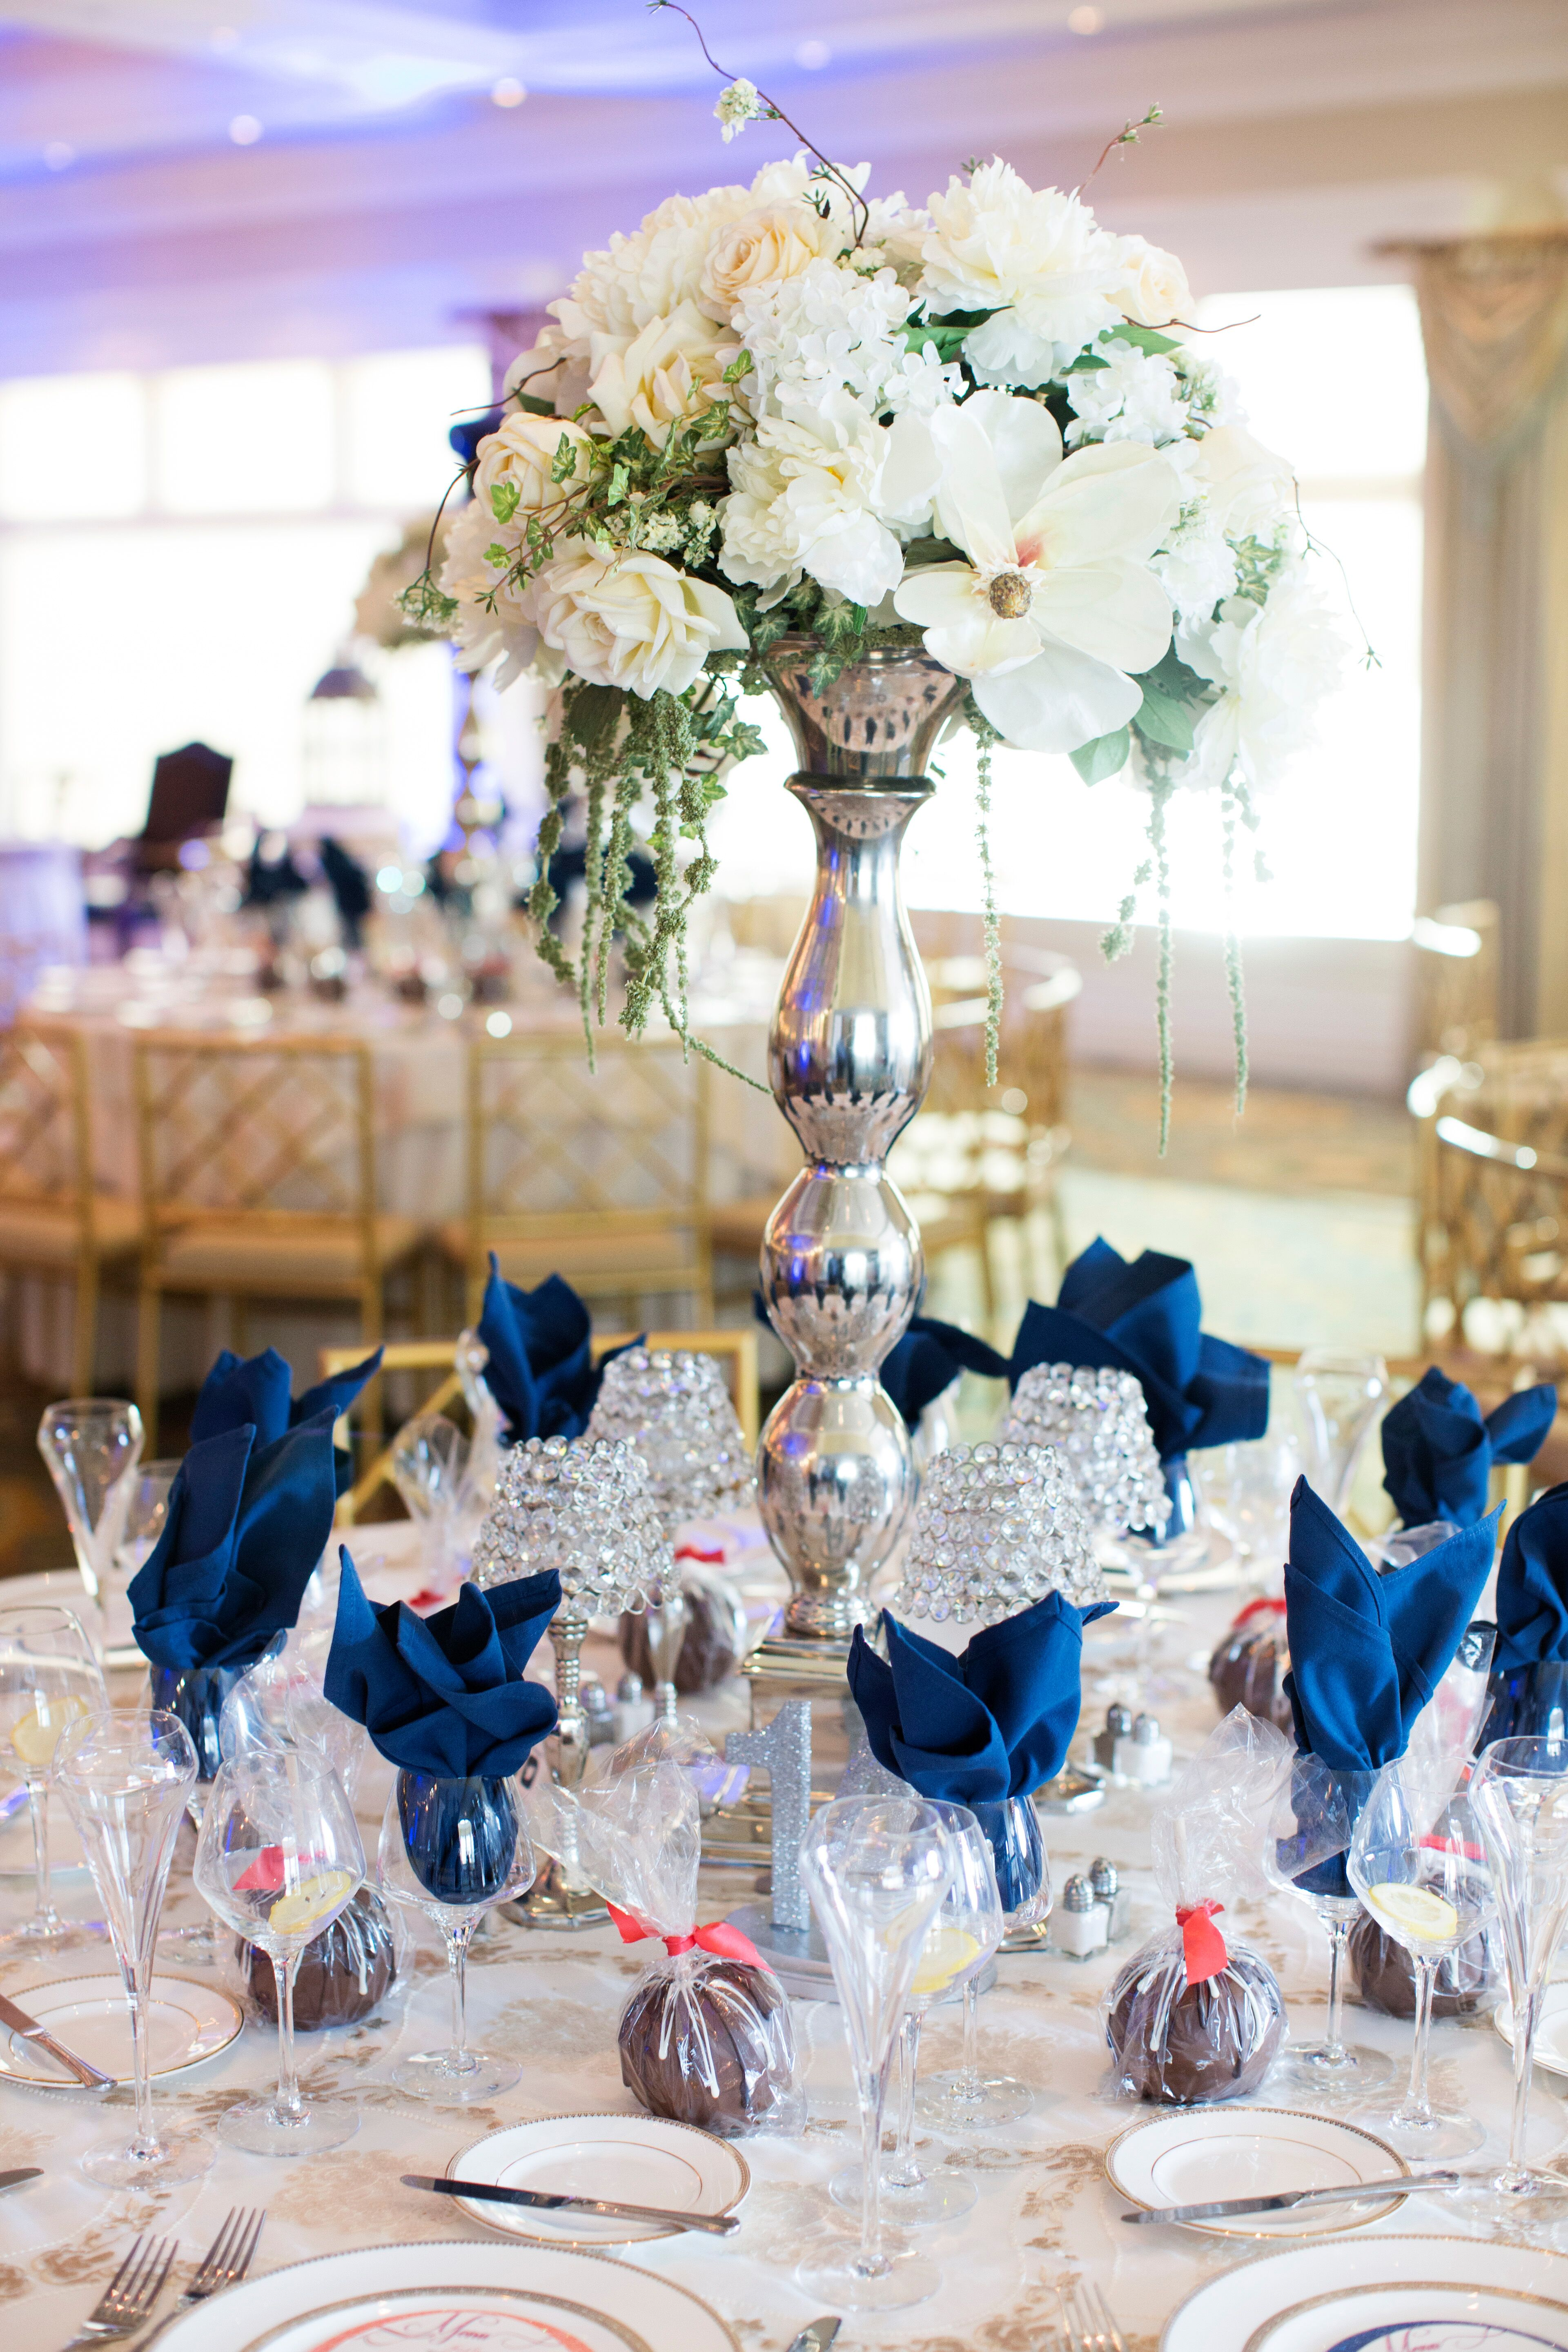 Tall White Floral Centerpieces In Silver Vases